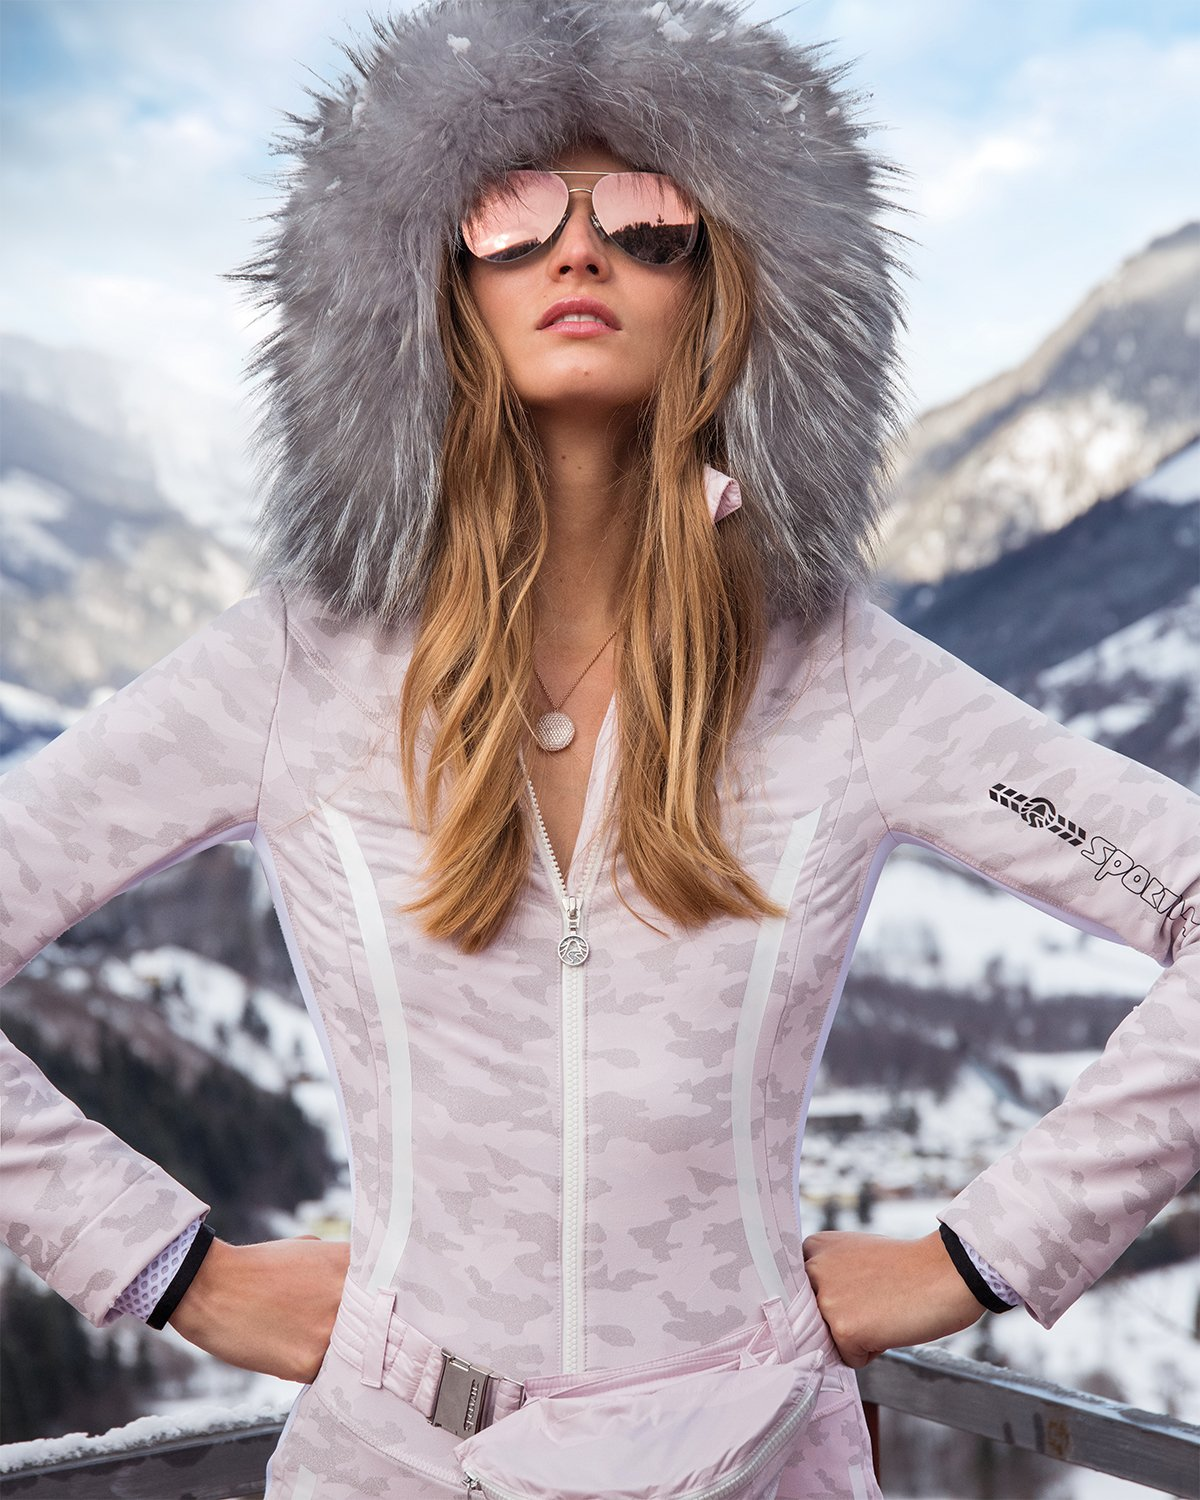 Christmas 2020 gift guide for skiers